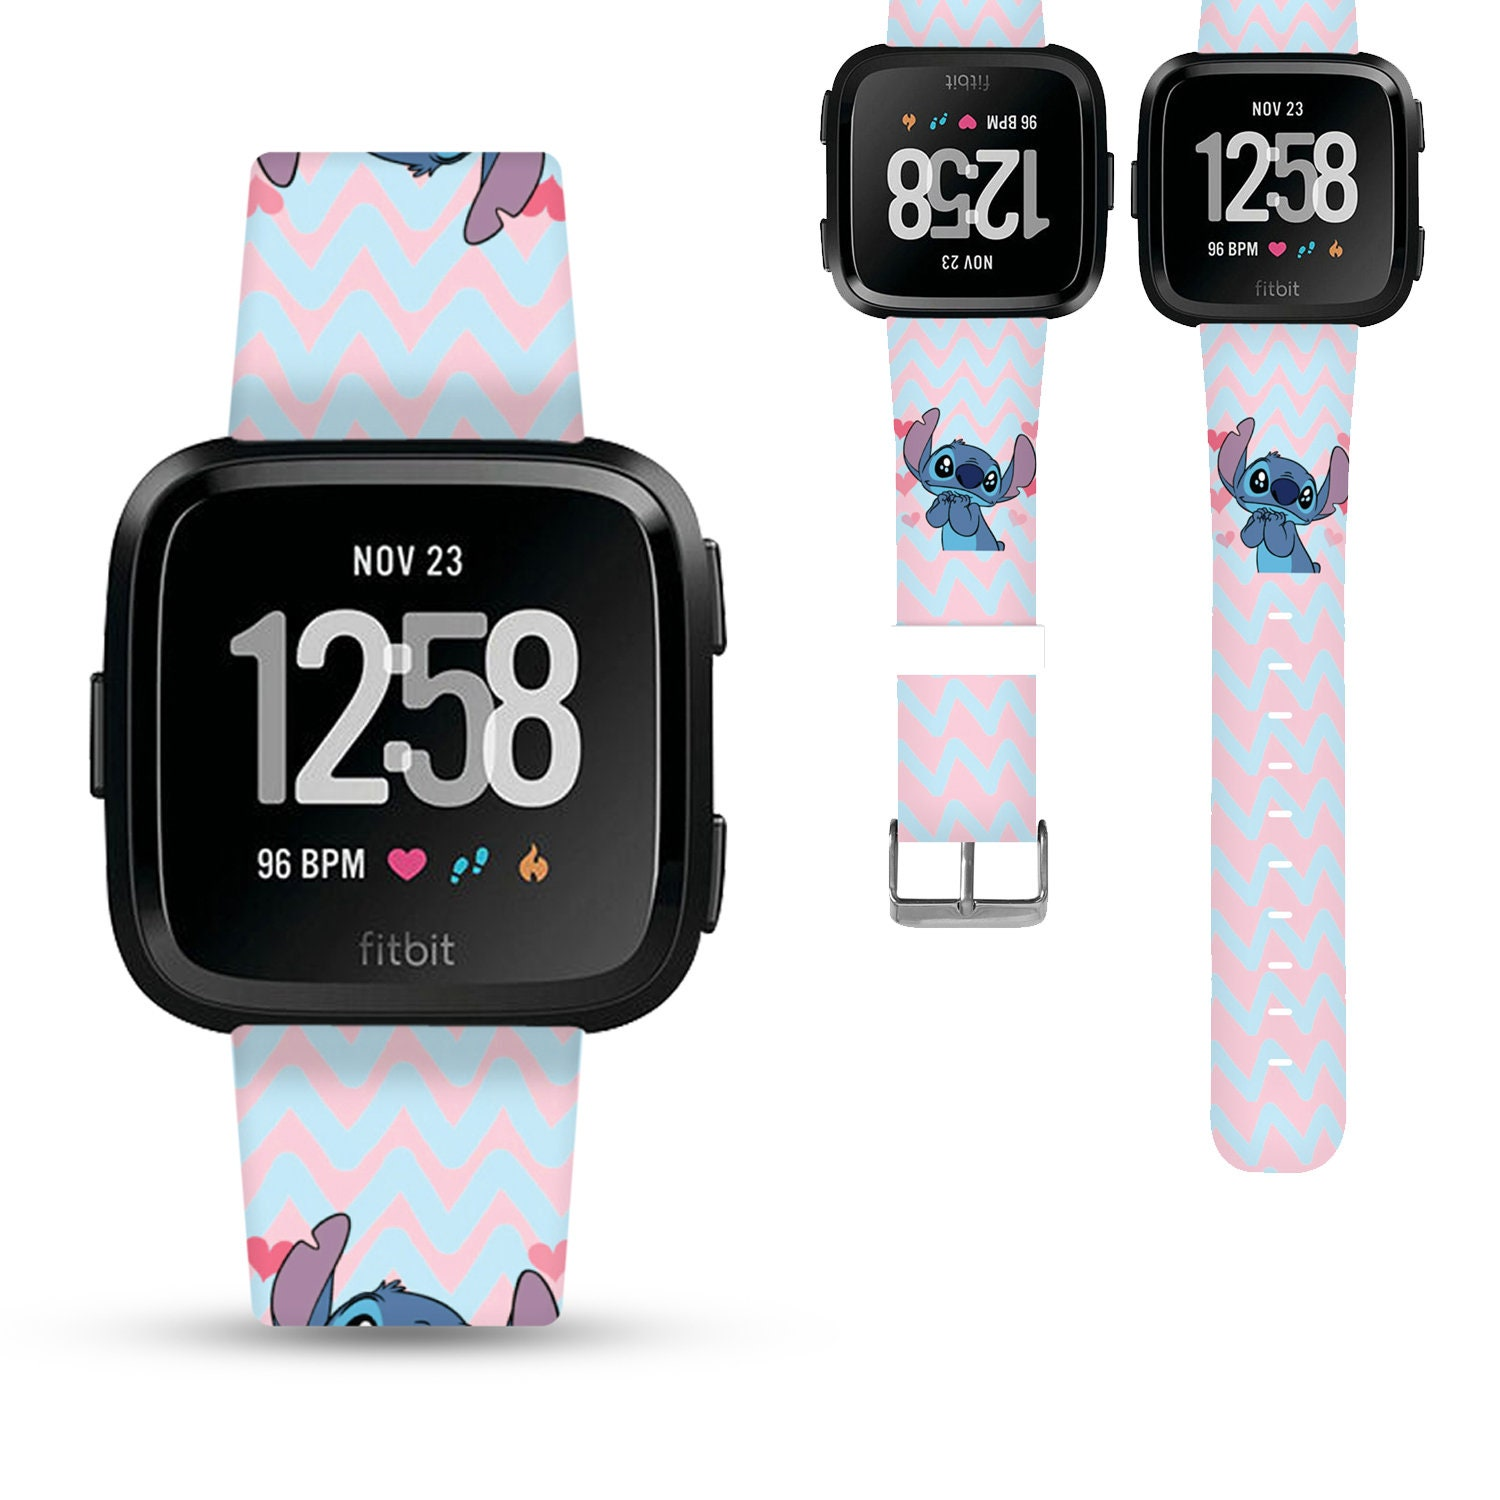 Fitbit watch band women, cute genuine leather watch band, Fitbit versa,  blaze, charge 2, charge 3, iwatch band, chevron blue pink -v9